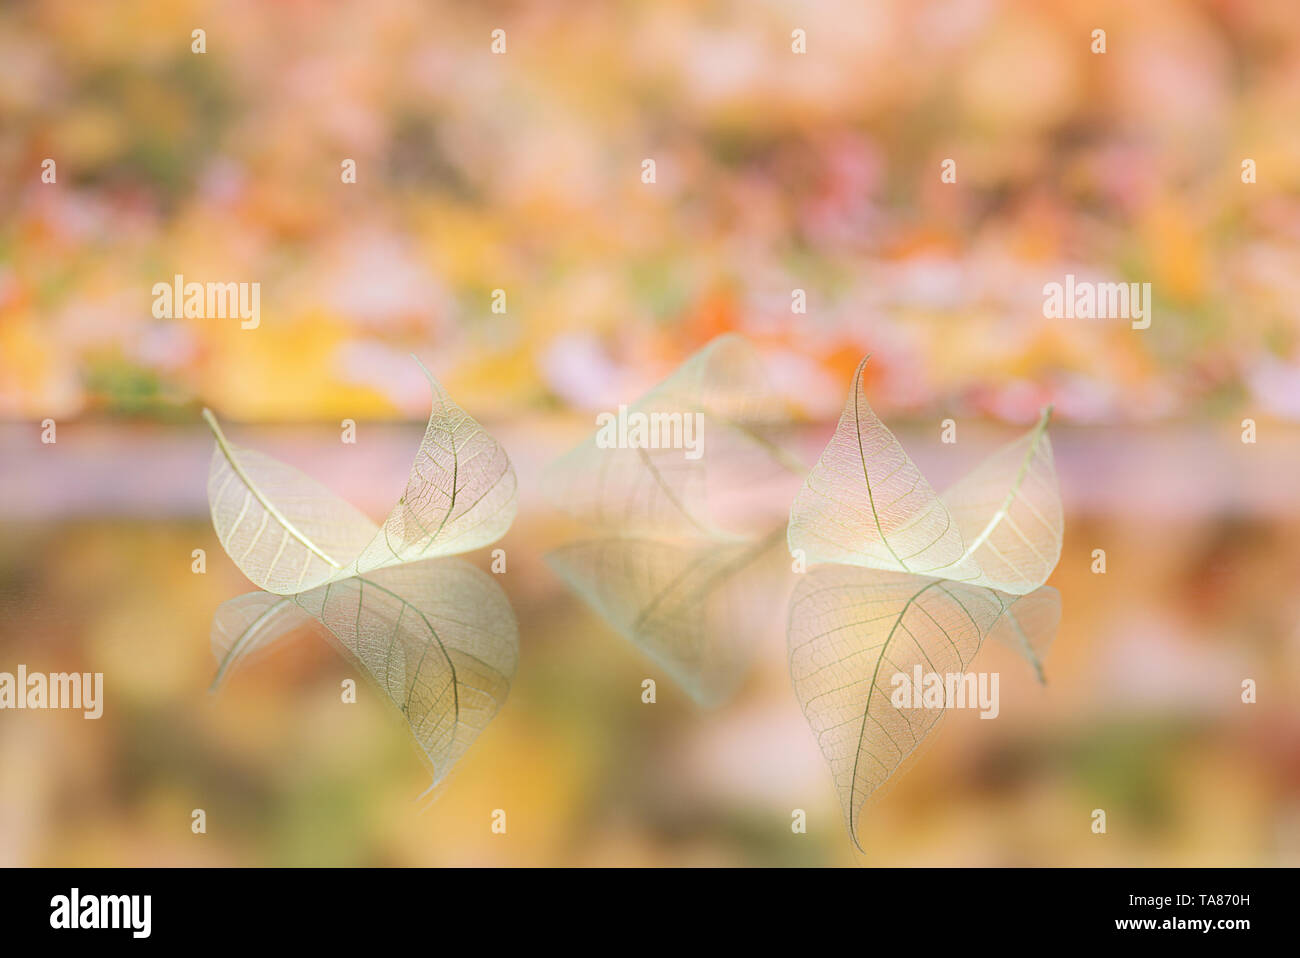 Transparent white leaves are on mirror surface with reflection on yellow-orange background, abstract macro with bokeh. Artistic image of ship in lake  - Stock Image